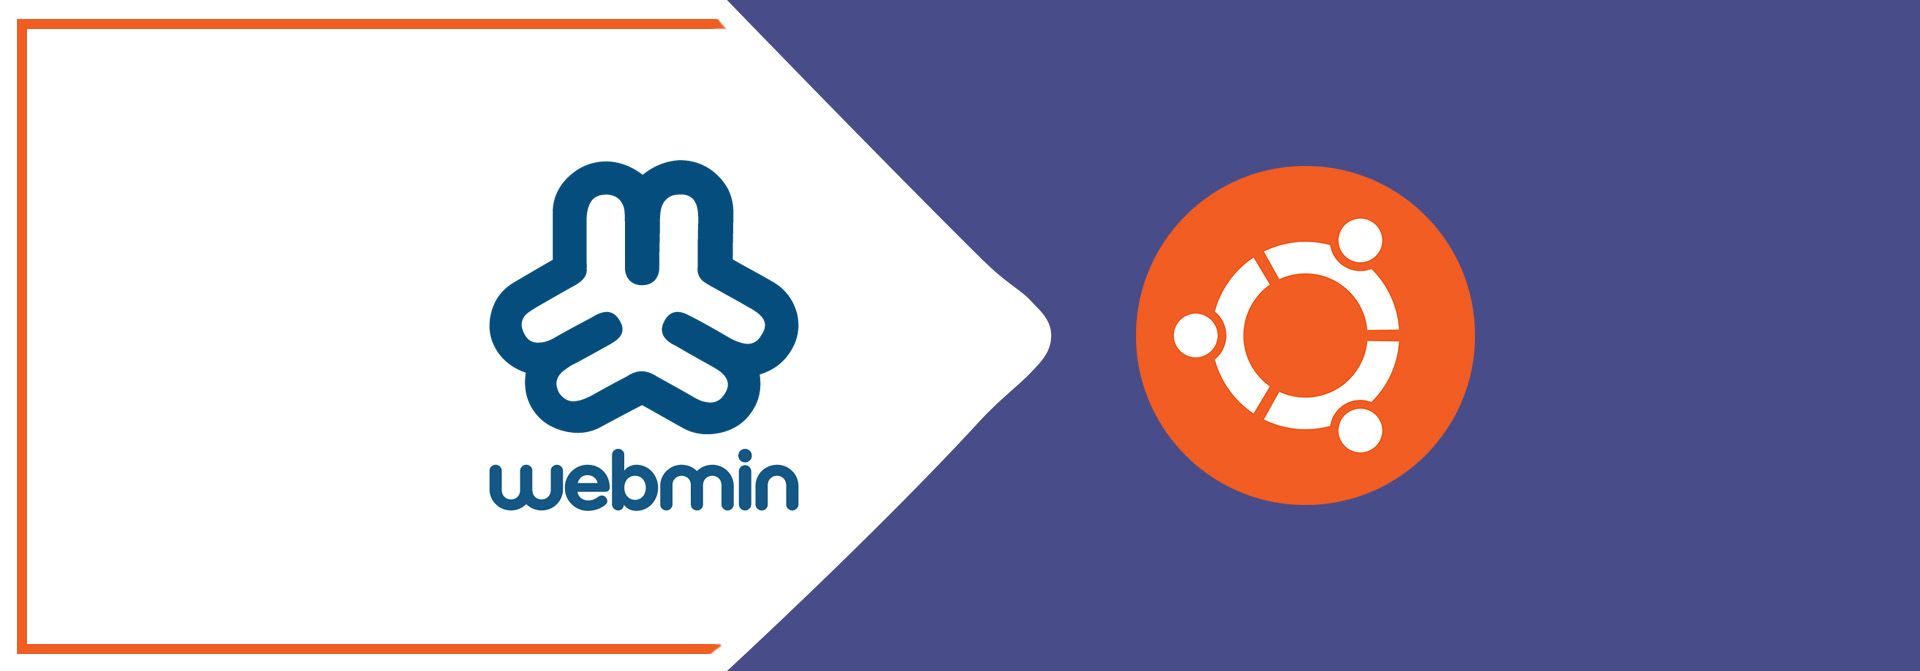 How To Install Webmin And Secure With Apache On Ubuntu 20.04 LTS